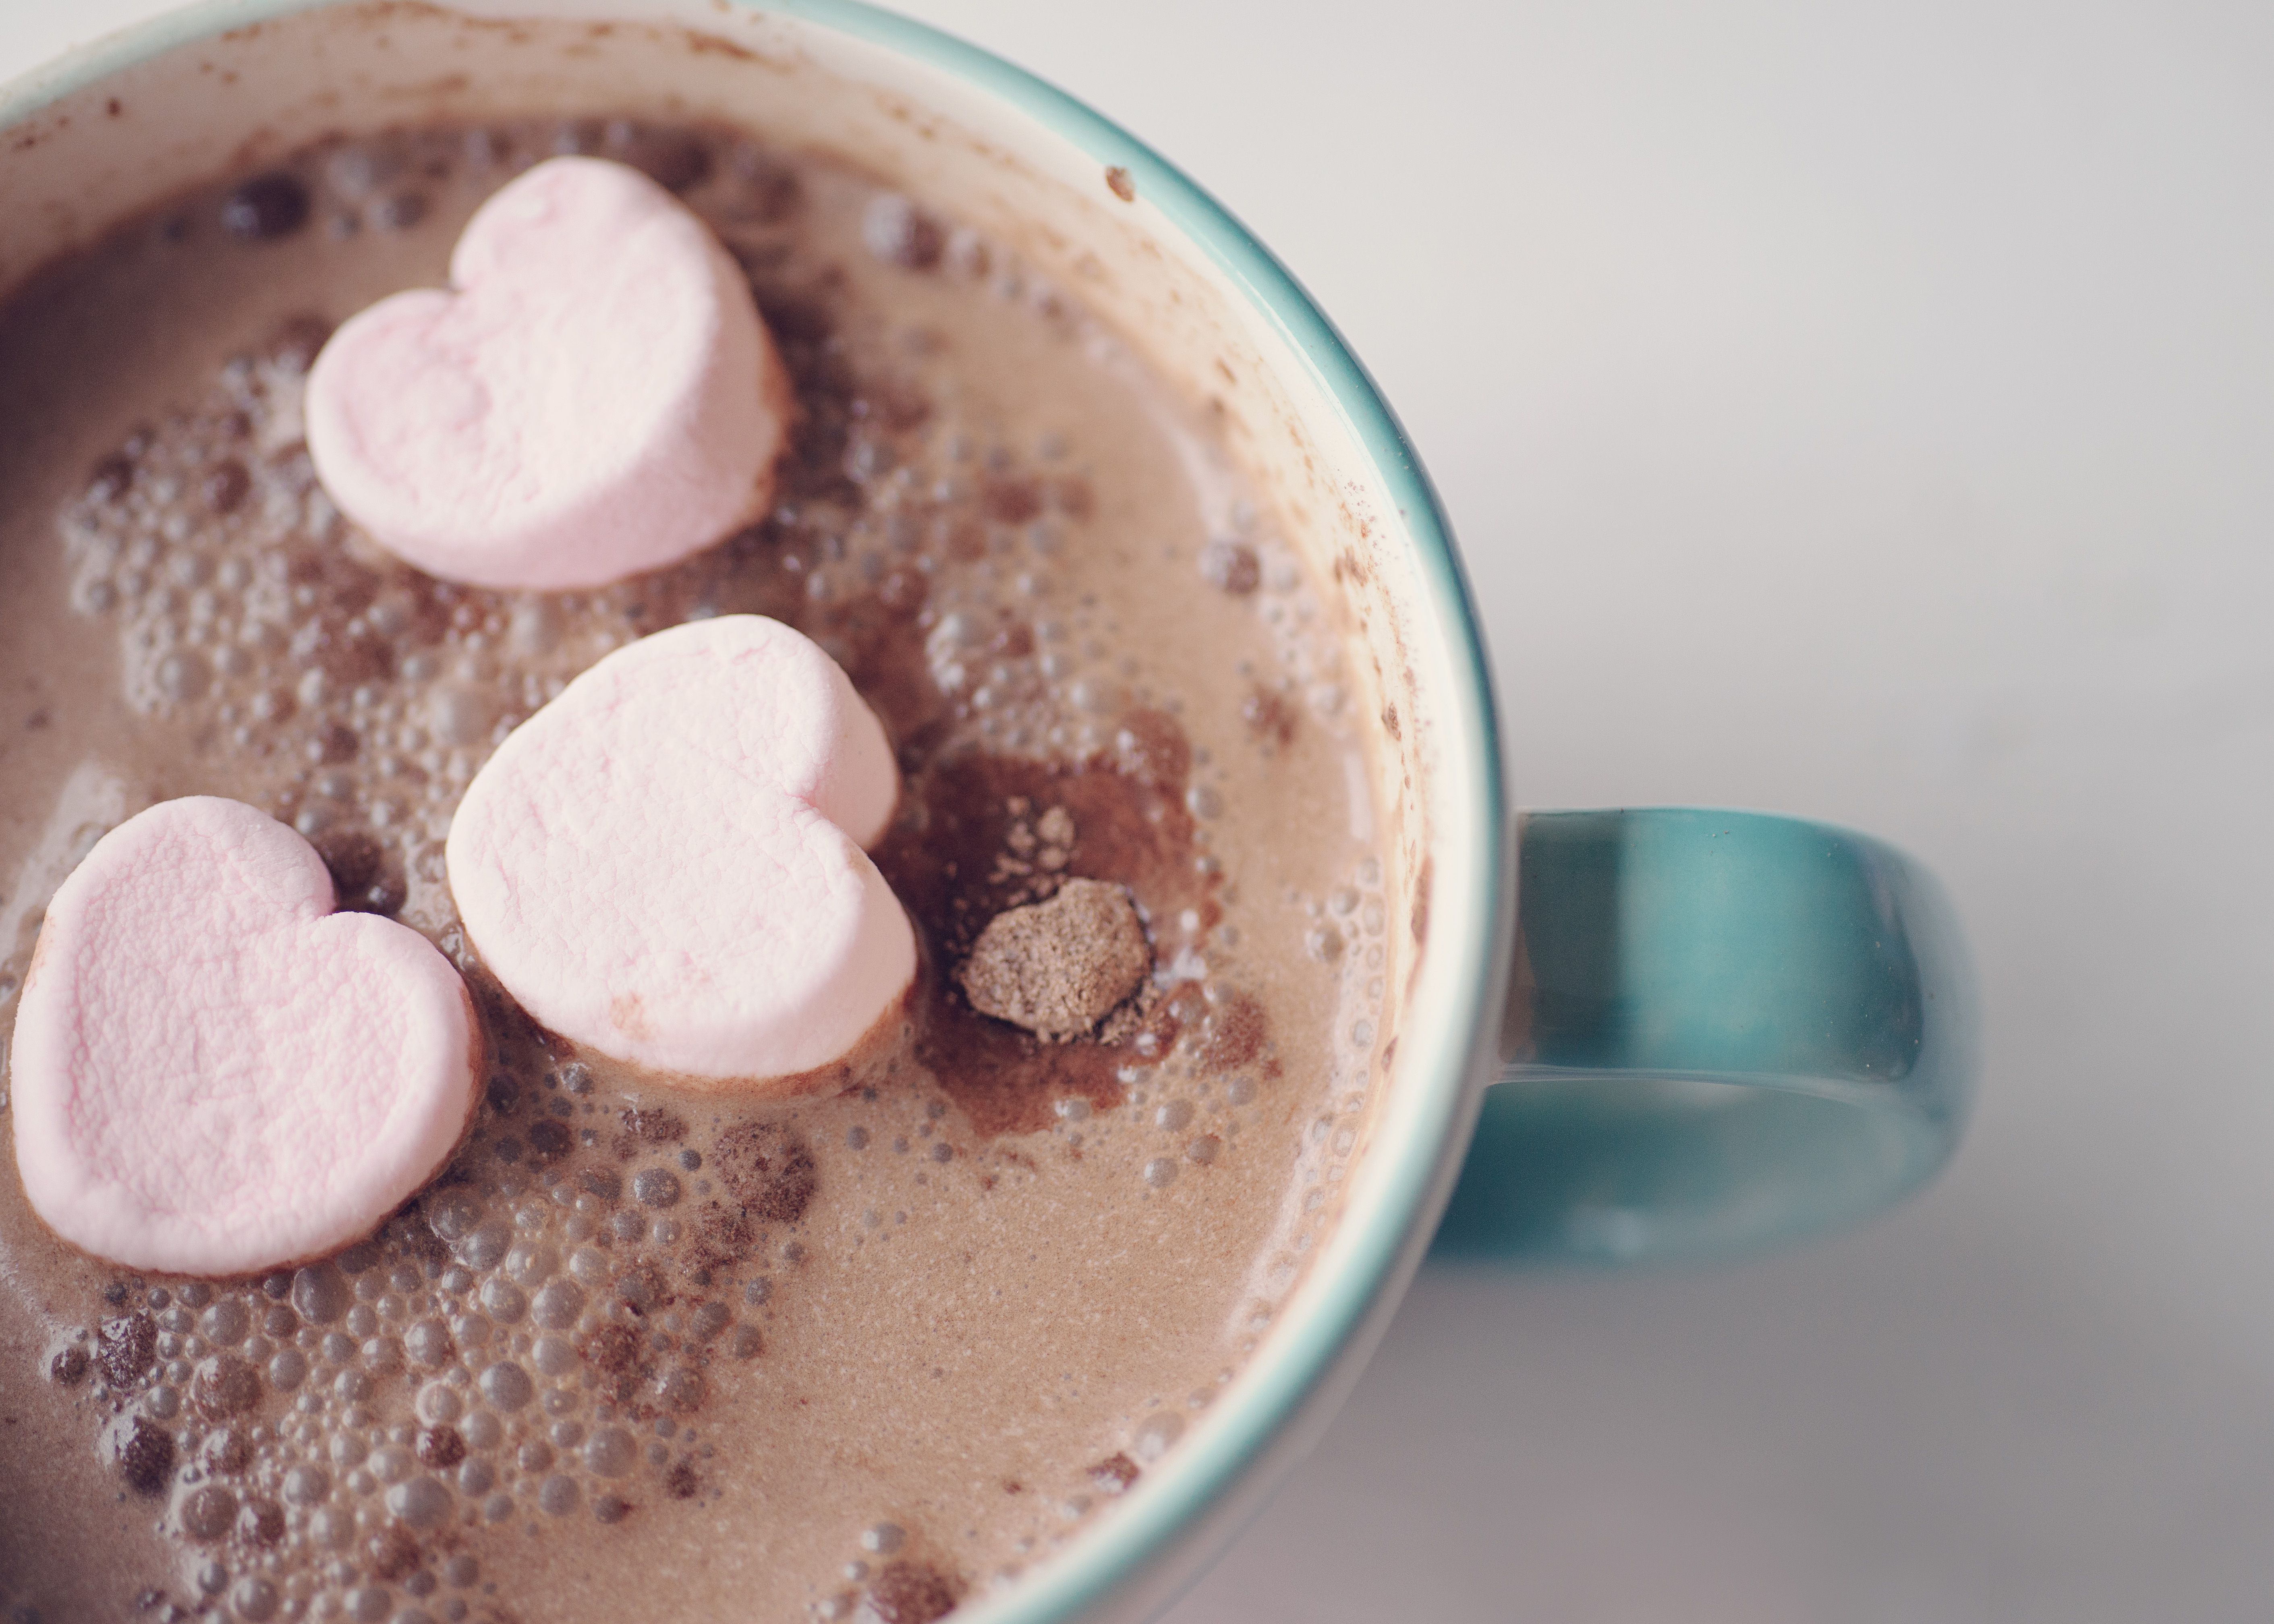 Hot cup of cocoa drink